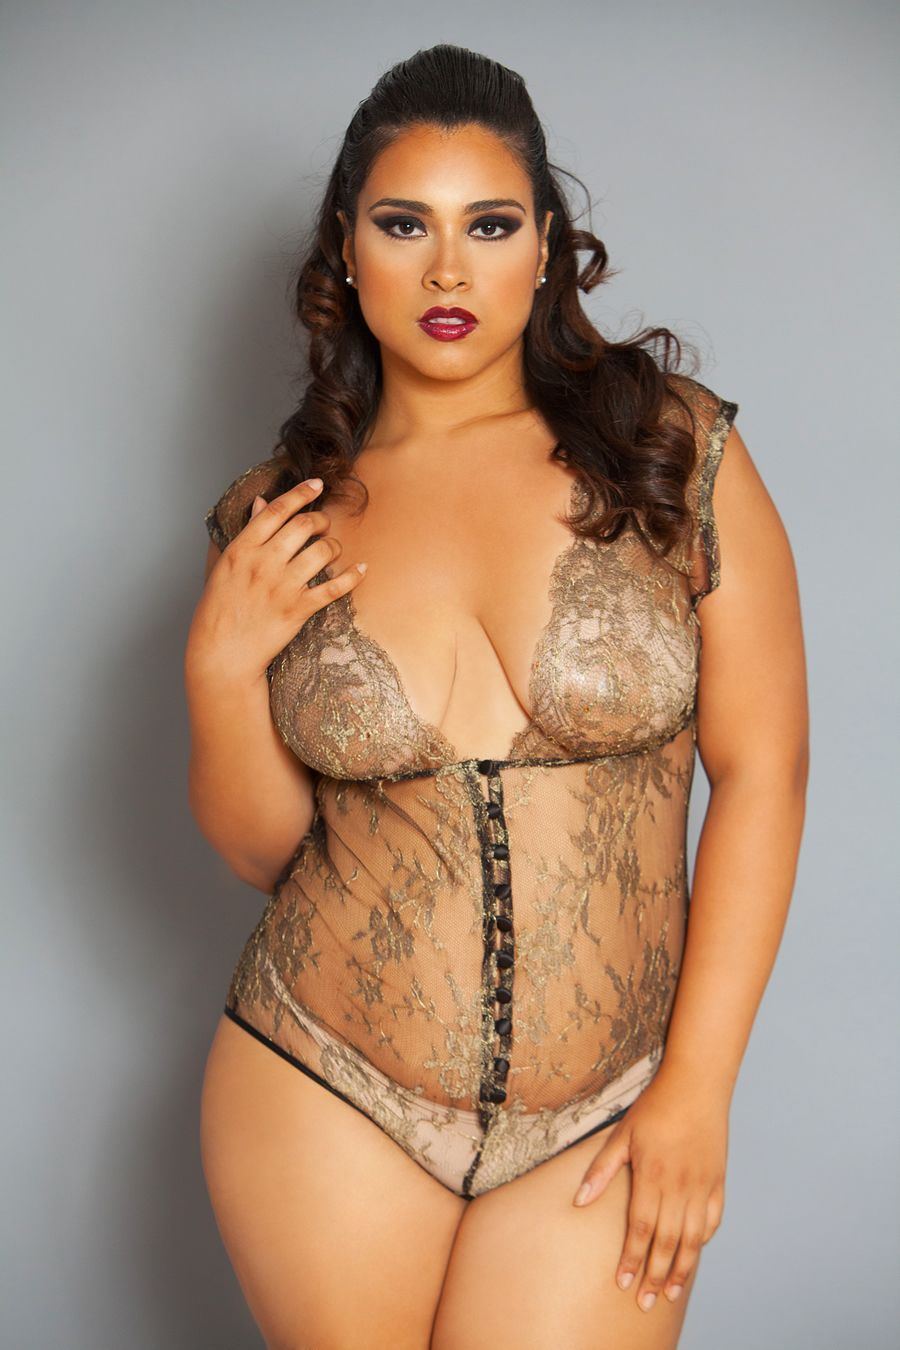 The Diva Bodysuit | plus-size | Pinterest | Bodysuit, Curves and ...